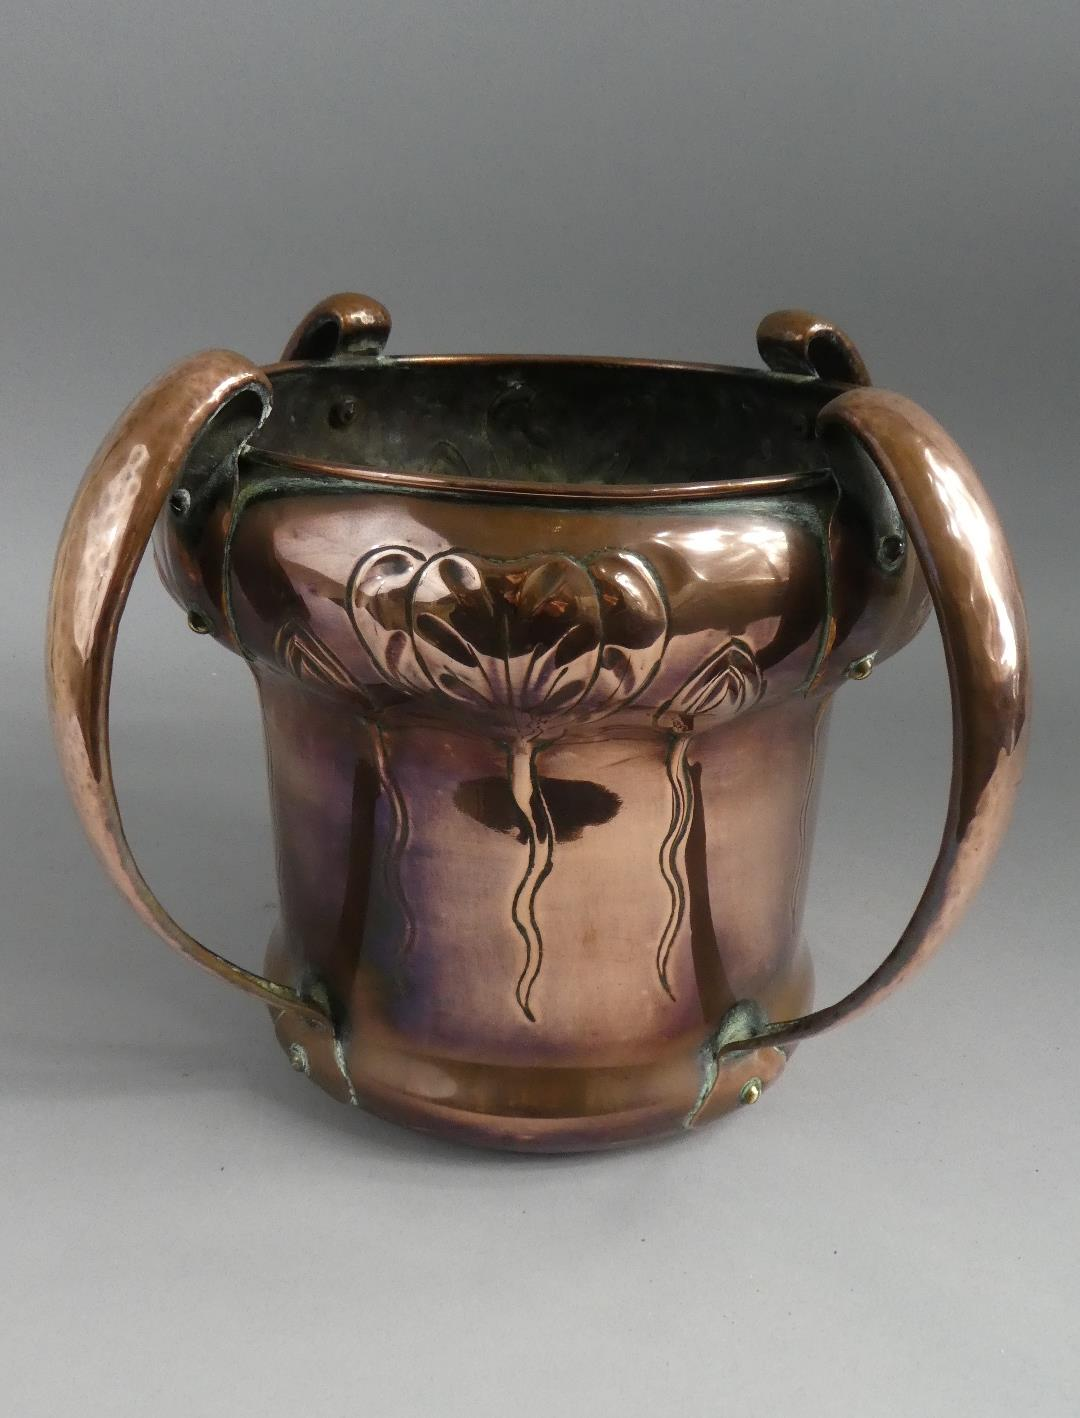 Lot 12 - A William Soutter and Sons Arts and Crafts/Art Nouveau Hand Beaten Copper Planter with Four Stylised